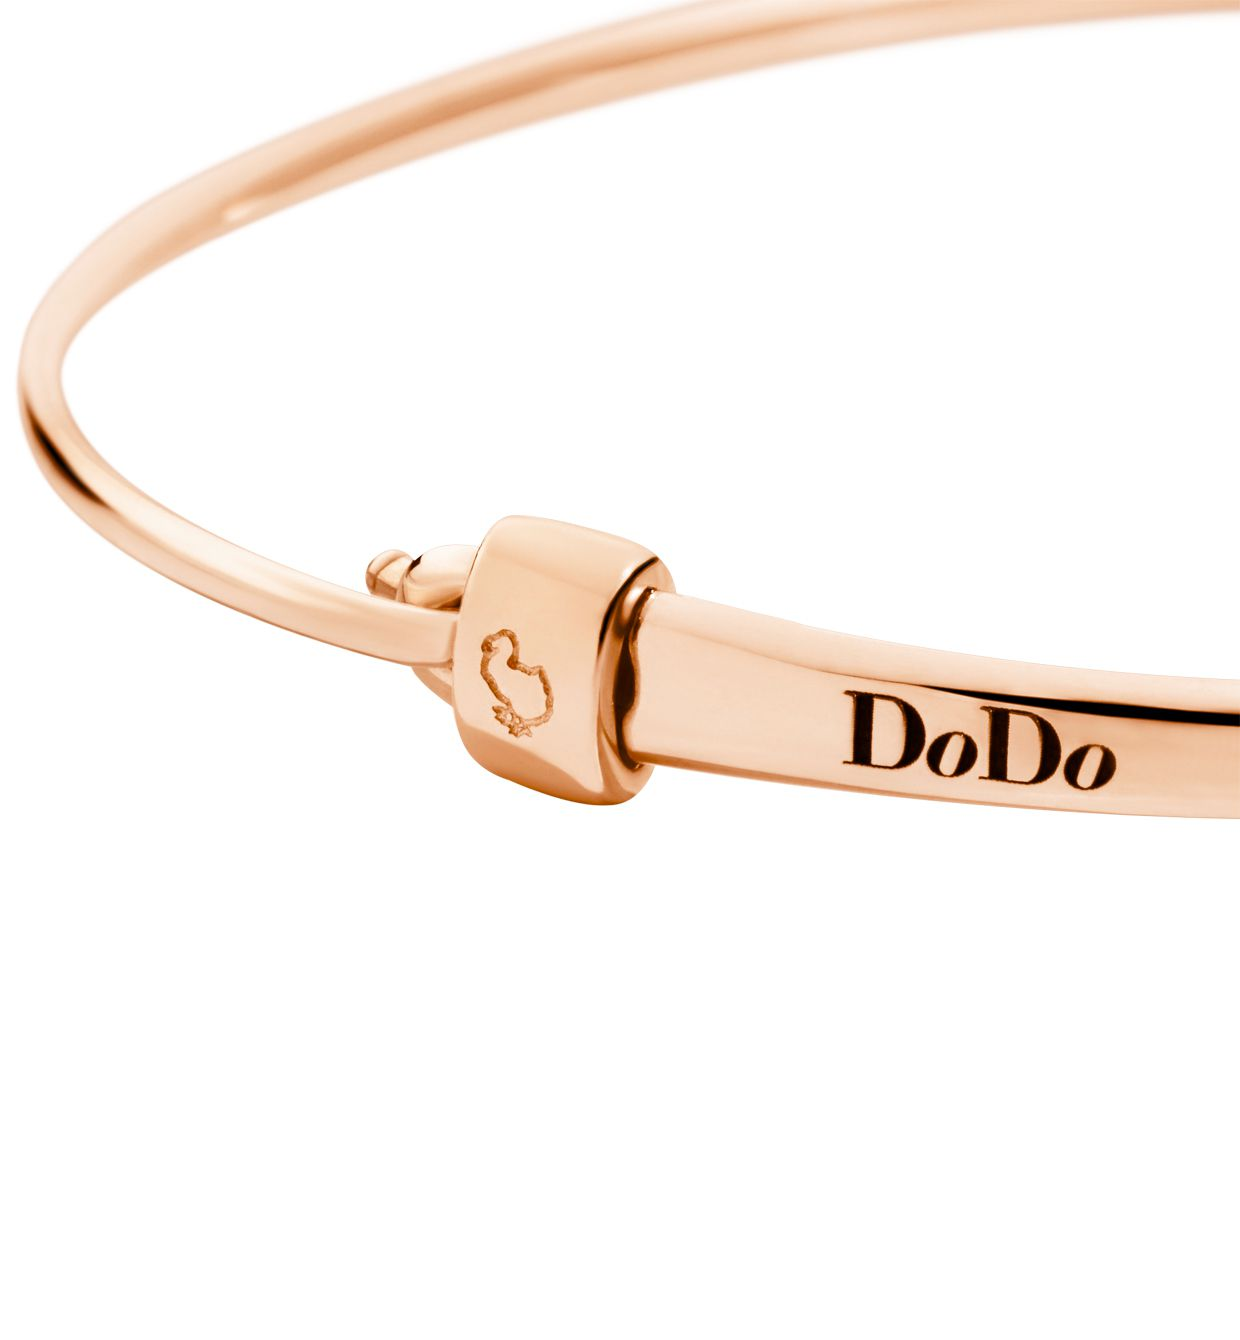 DoDo Bangle Stopper in 9k Rose Gold - Orsini Jewellers NZ